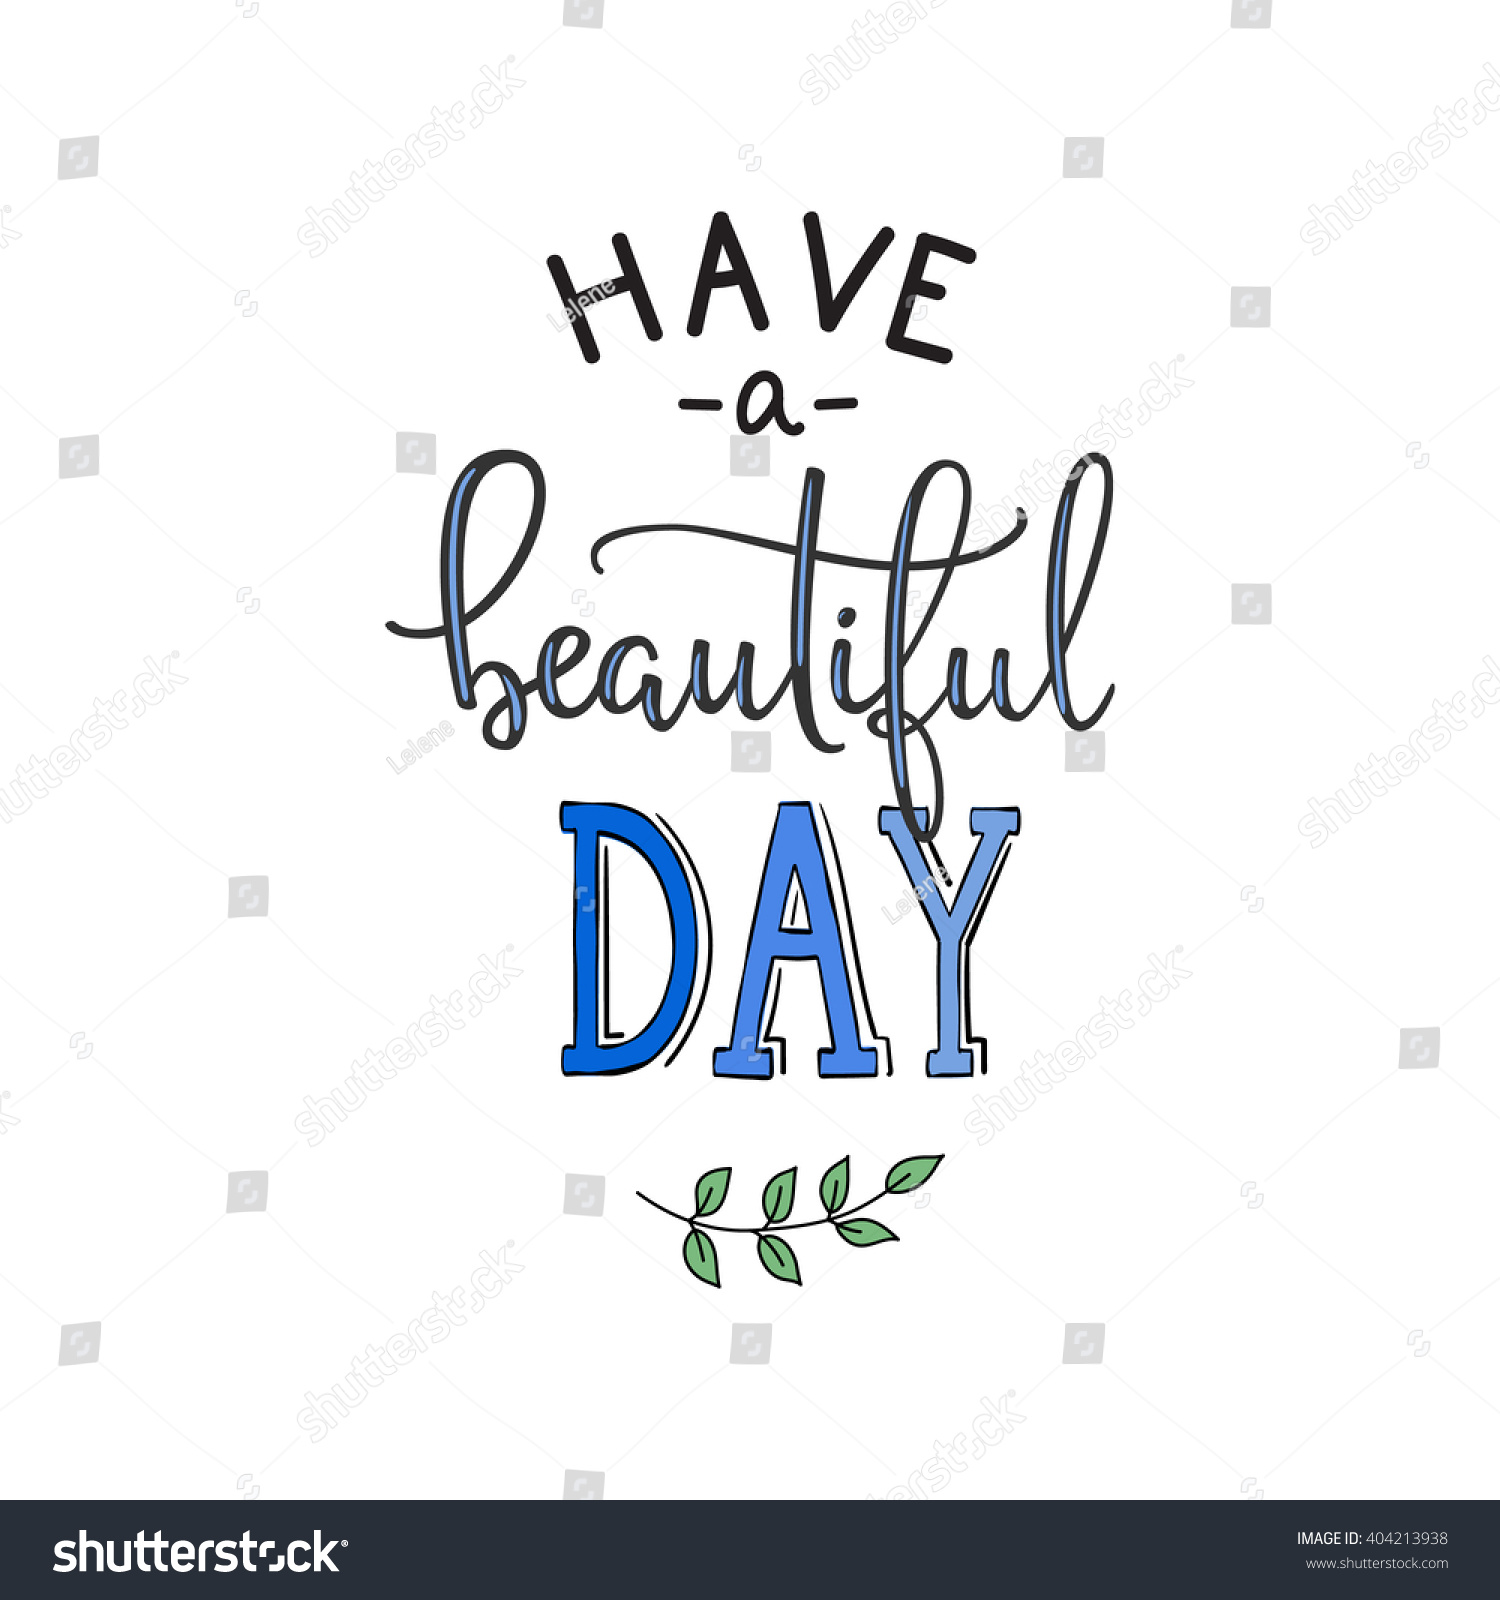 Have beautiful day quote lettering calligraphy stock